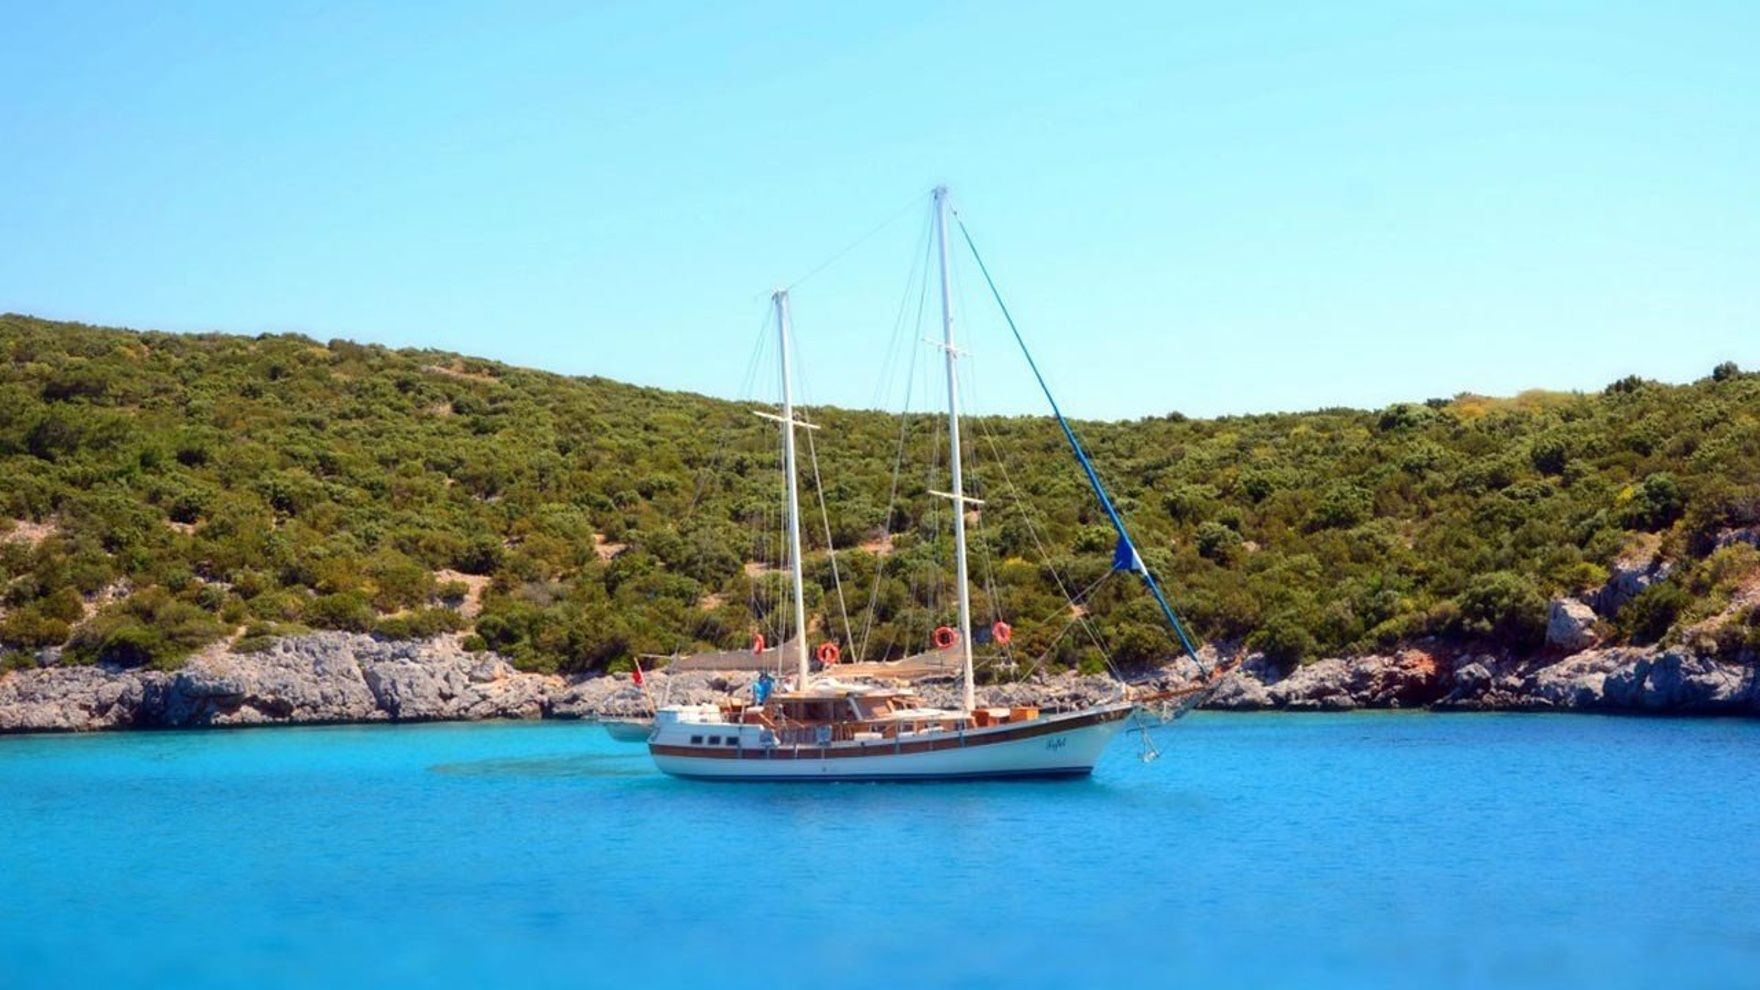 Day sailing in Bodrum